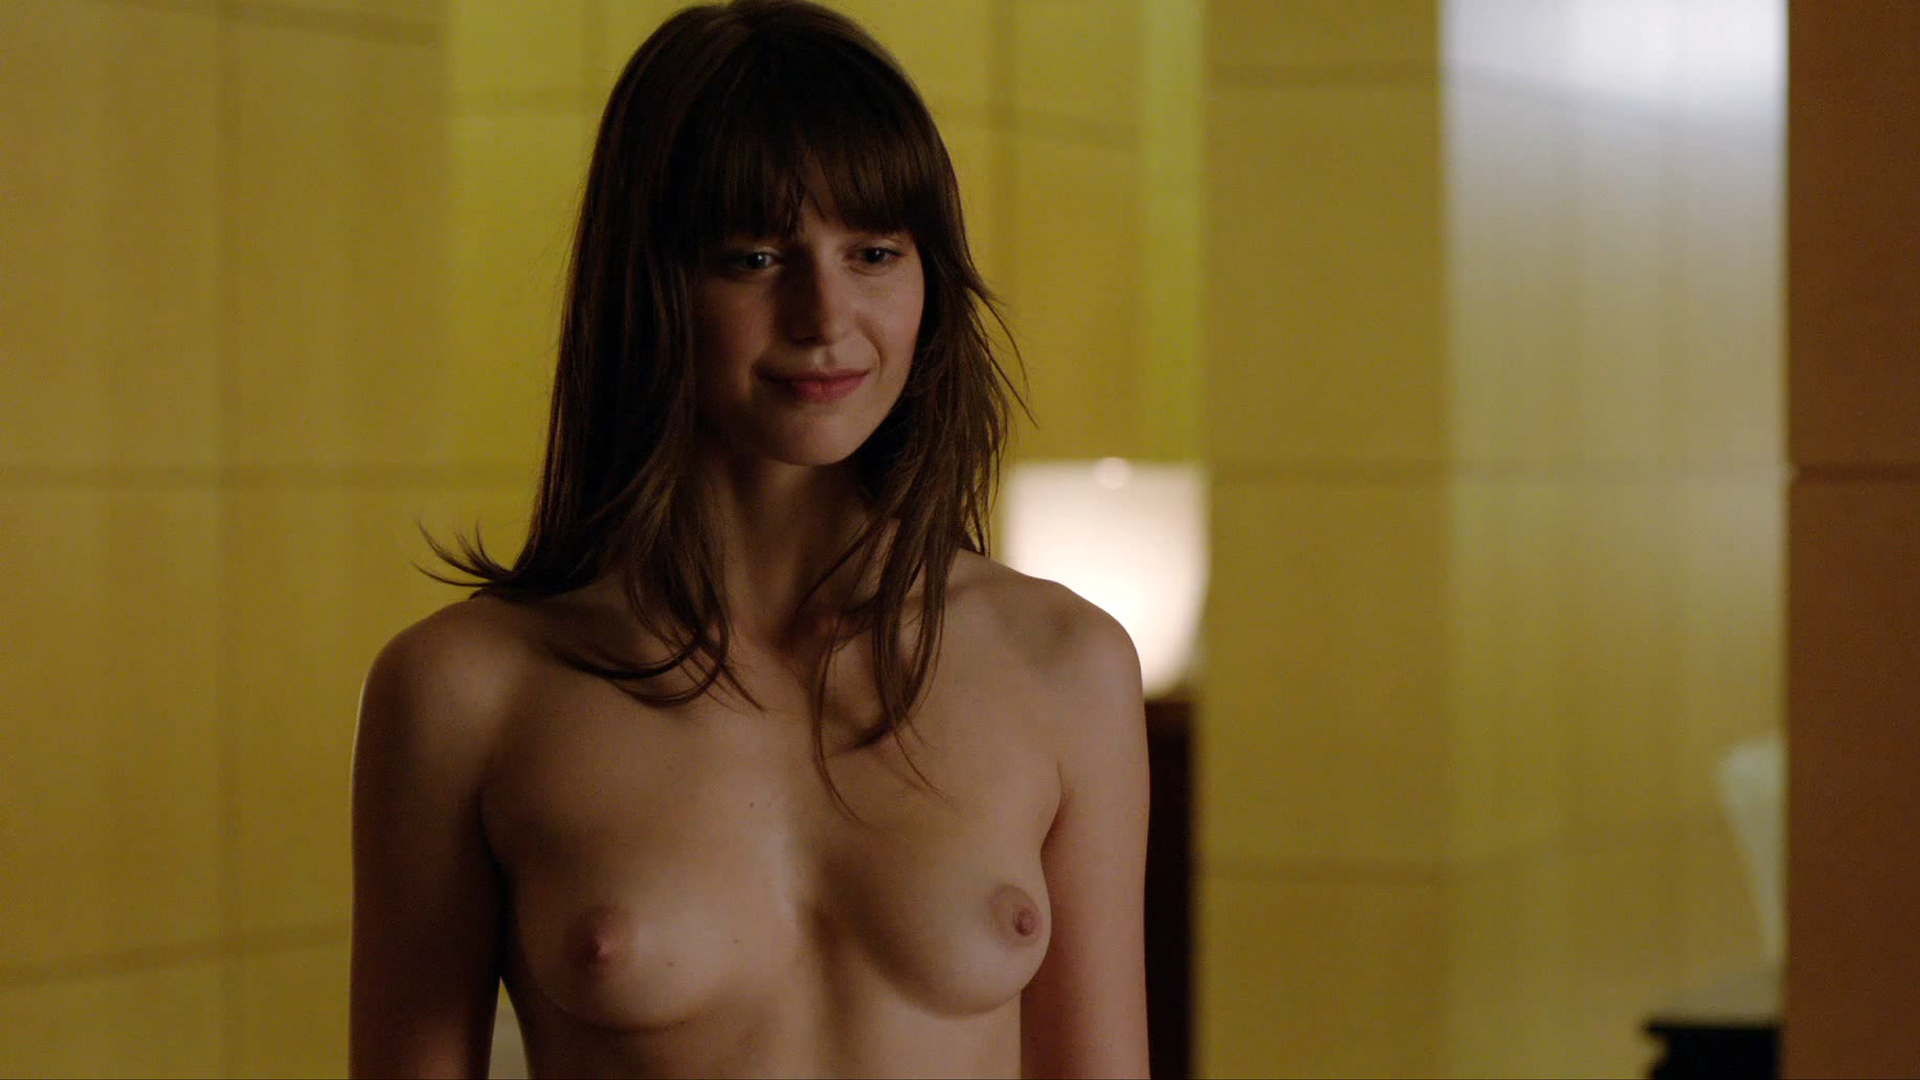 Nudes Melissa Benoist naked (17 foto and video), Pussy, Paparazzi, Instagram, swimsuit 2020